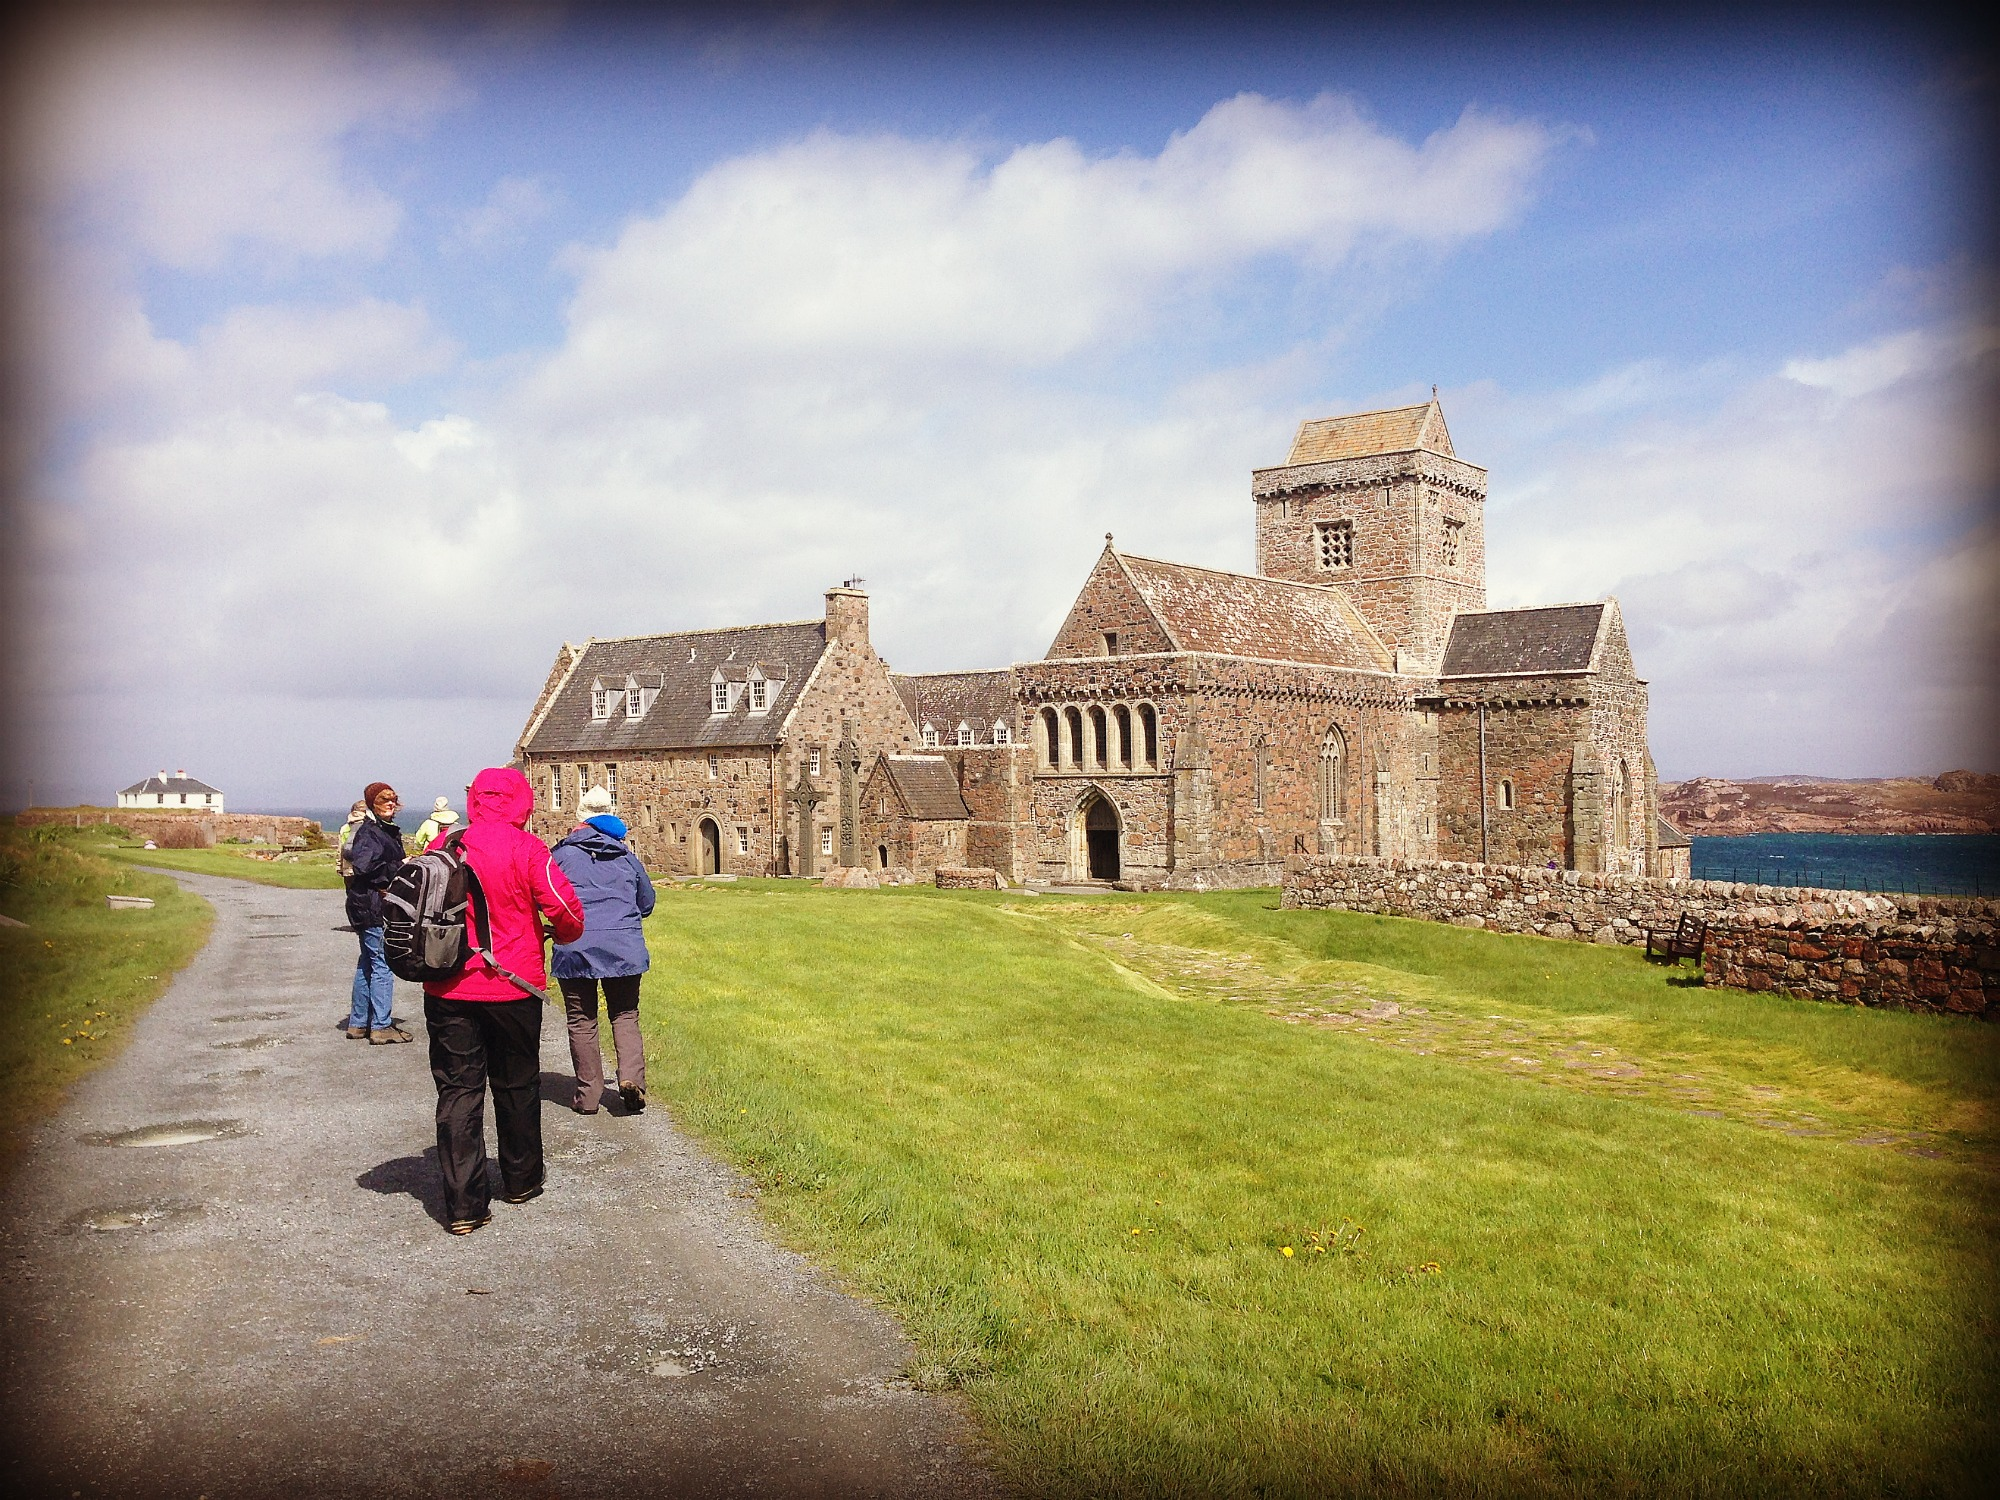 pilgrims going to the abbey